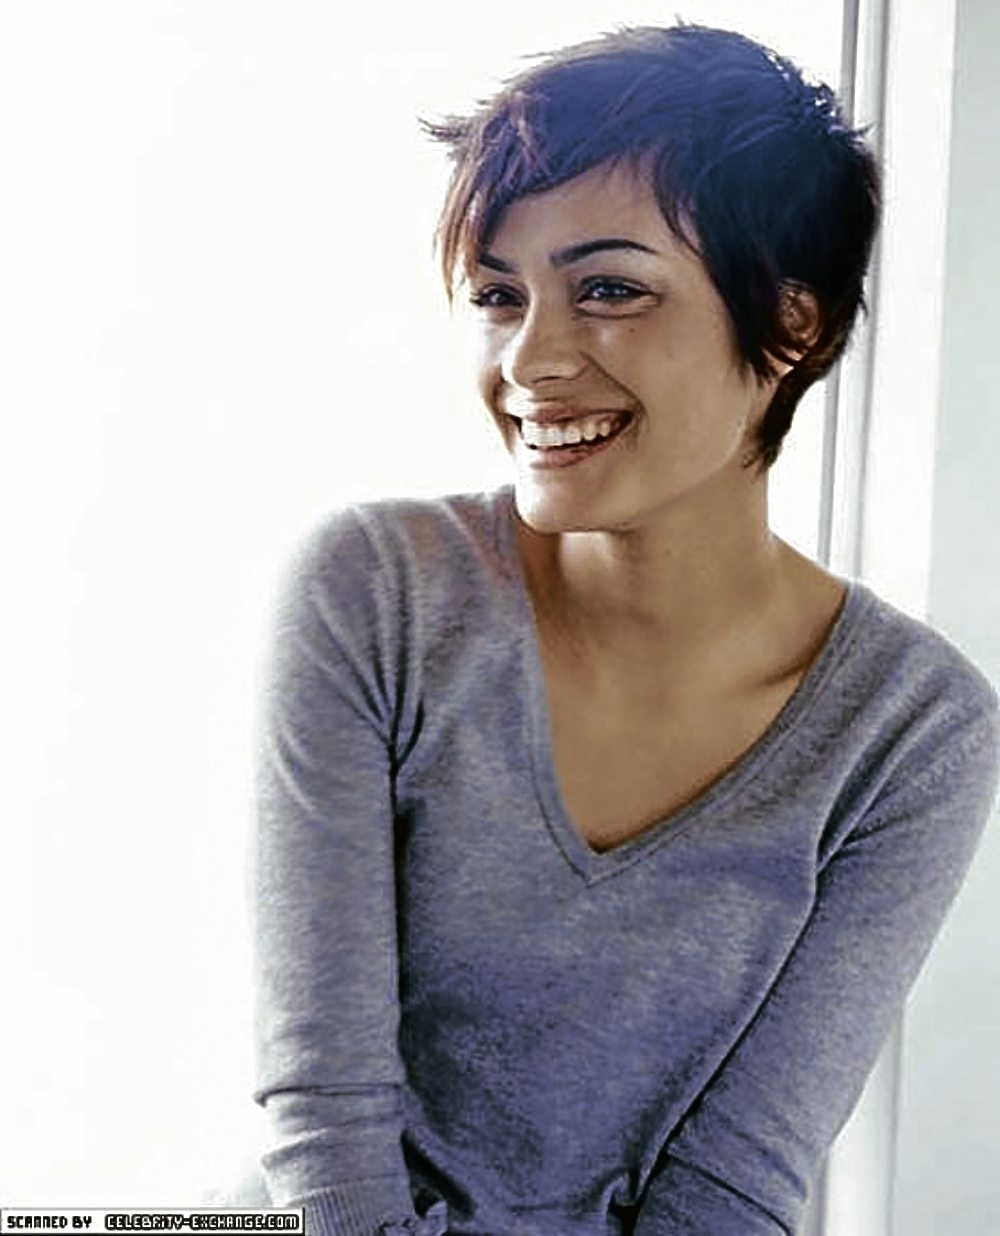 Pixie Haircut For Thick Curly Hair 1000+ Images About Pixie Cut On Inside Most Popular Pixie Hairstyles For Wavy Hair (View 6 of 15)